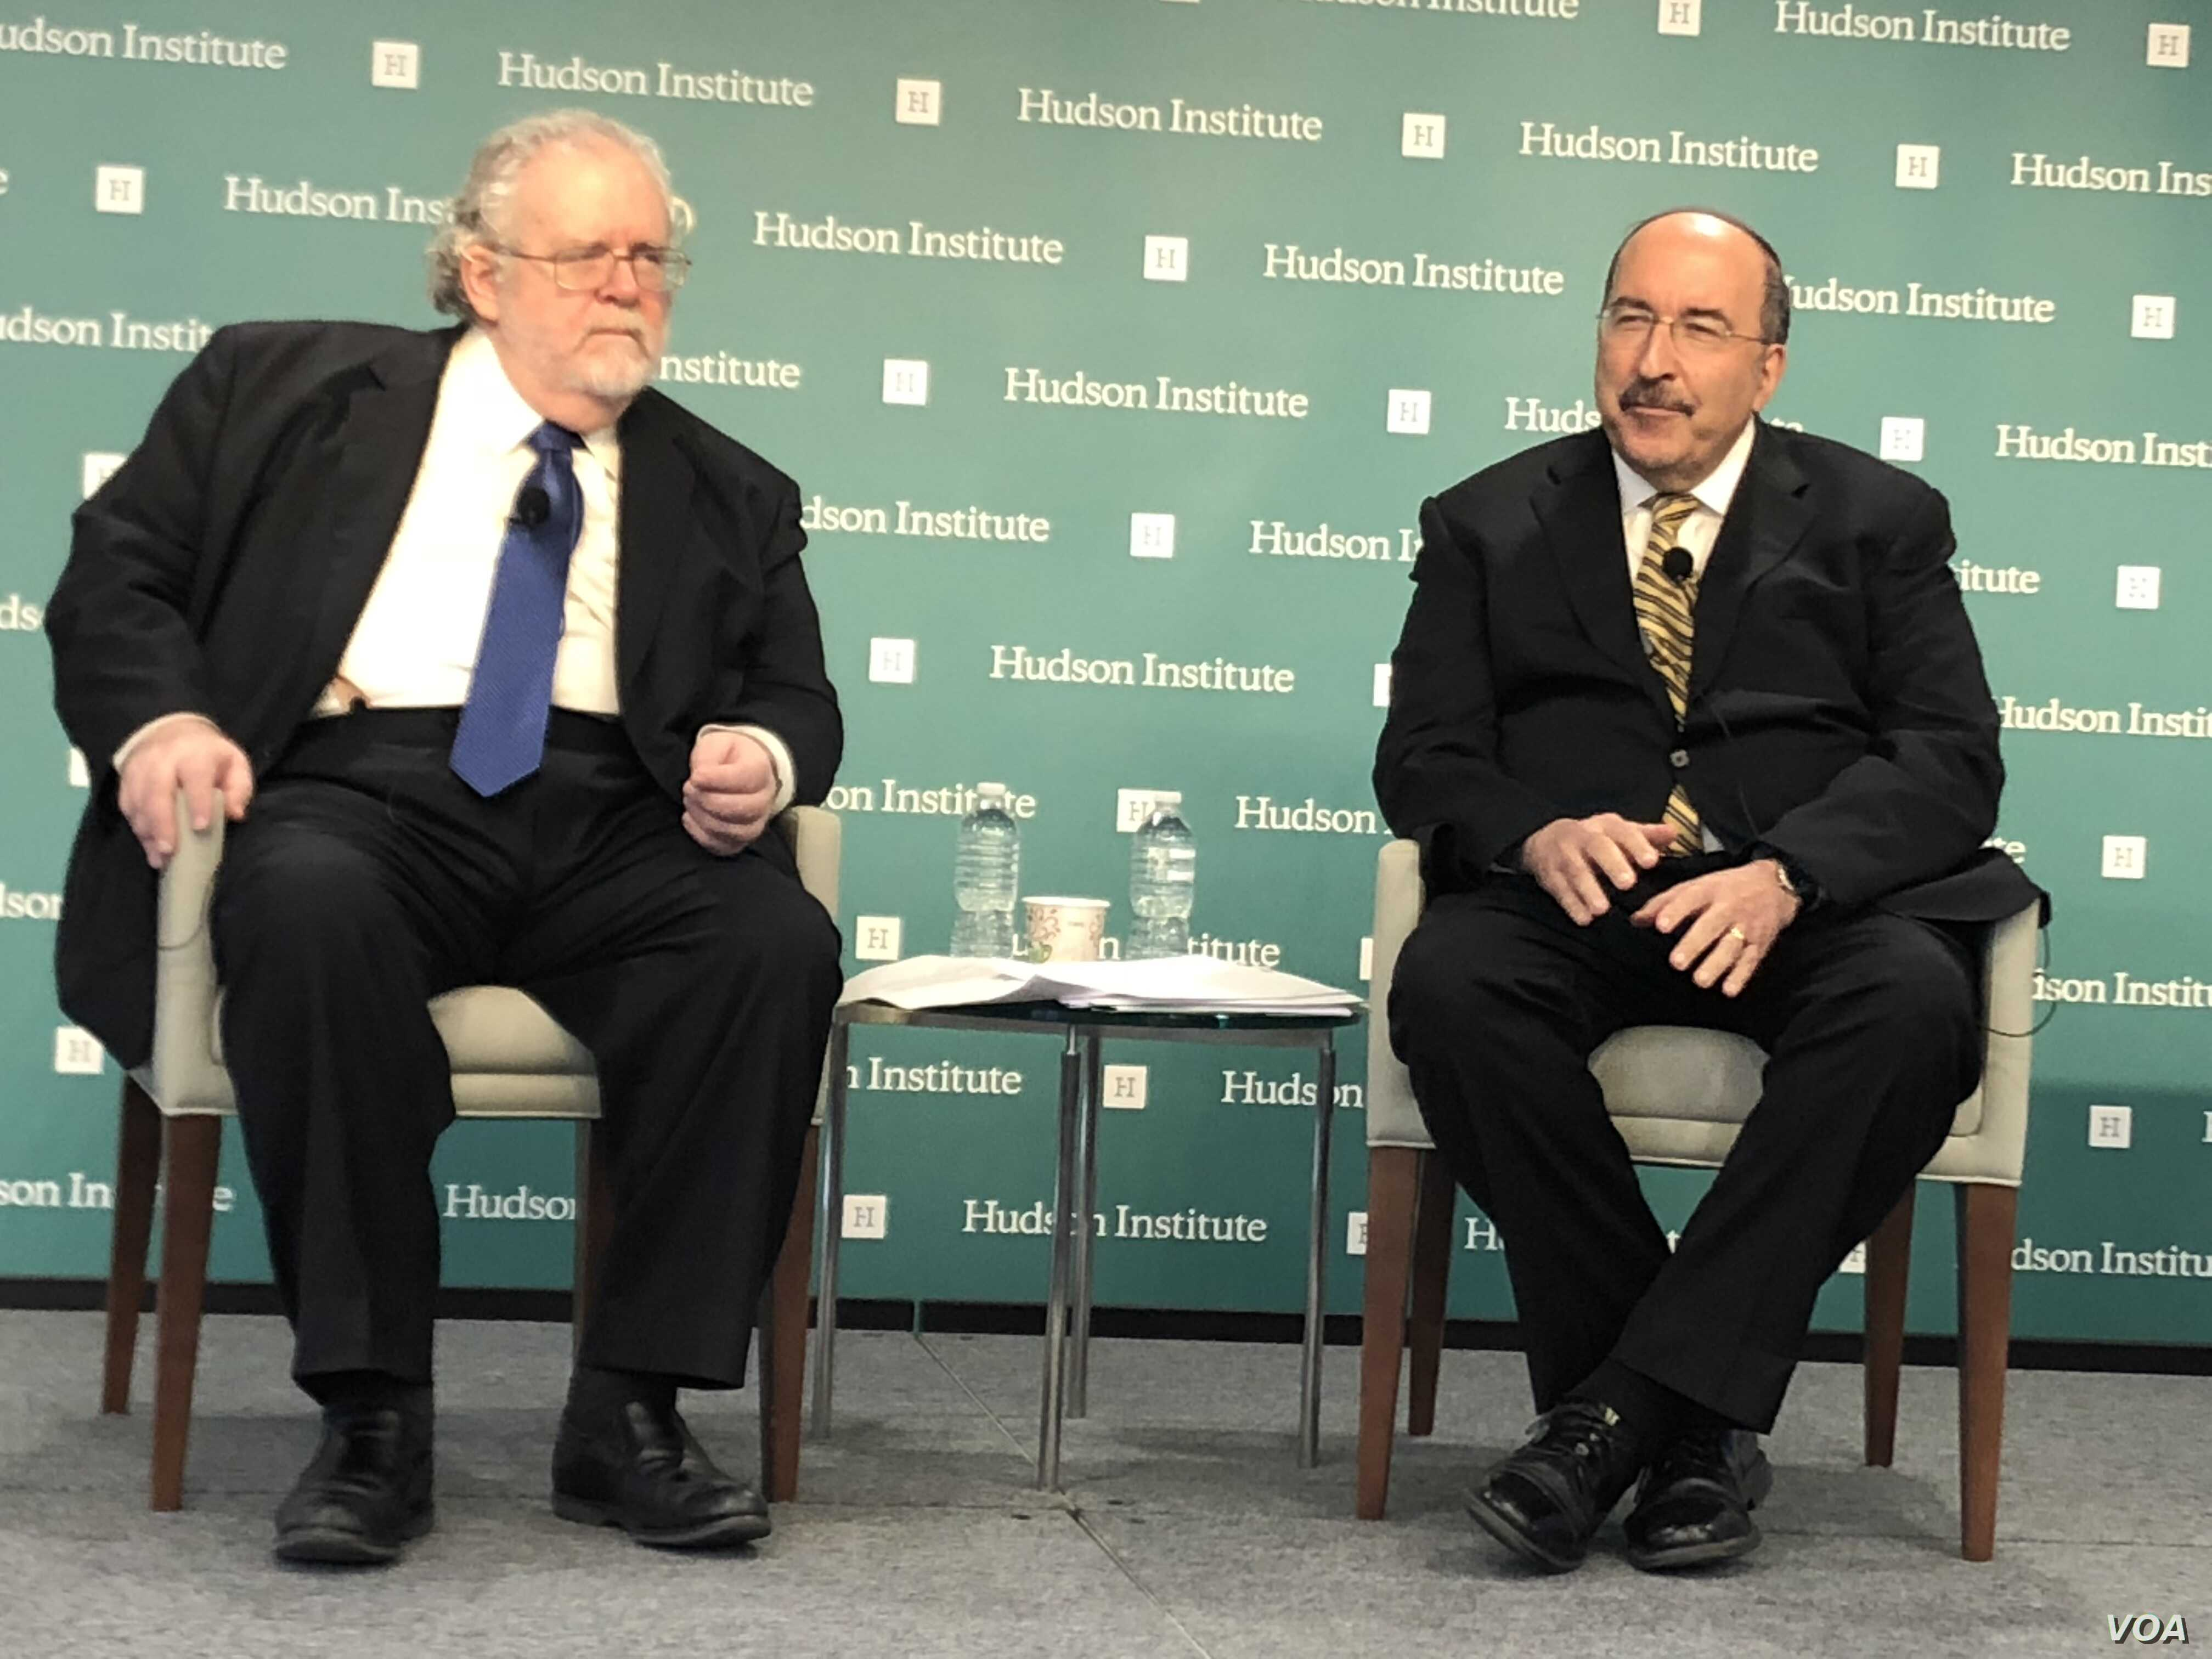 Former Israeli Ambassador to the U.N. Dore Gold, right, participates in a dialogue with the Hudson Institute's Walter Russell Mead in Washington on Nov. 27, 2018 (M. Lipin, VOA Persian)